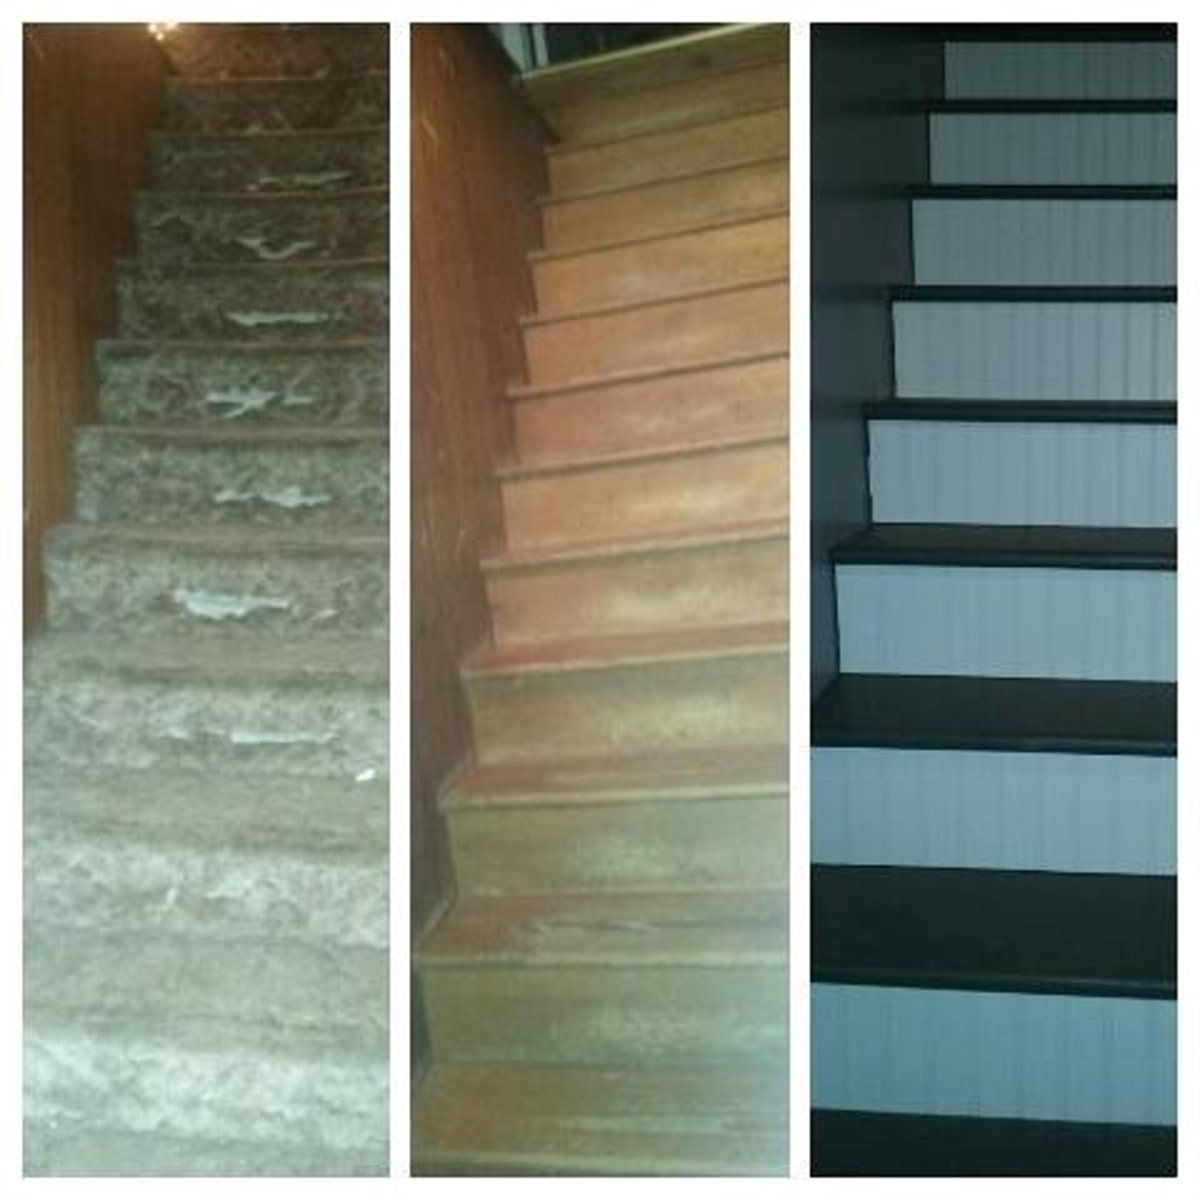 Redoing Carpeted Stairs:  From worn out carpet to paint, one couples journey!